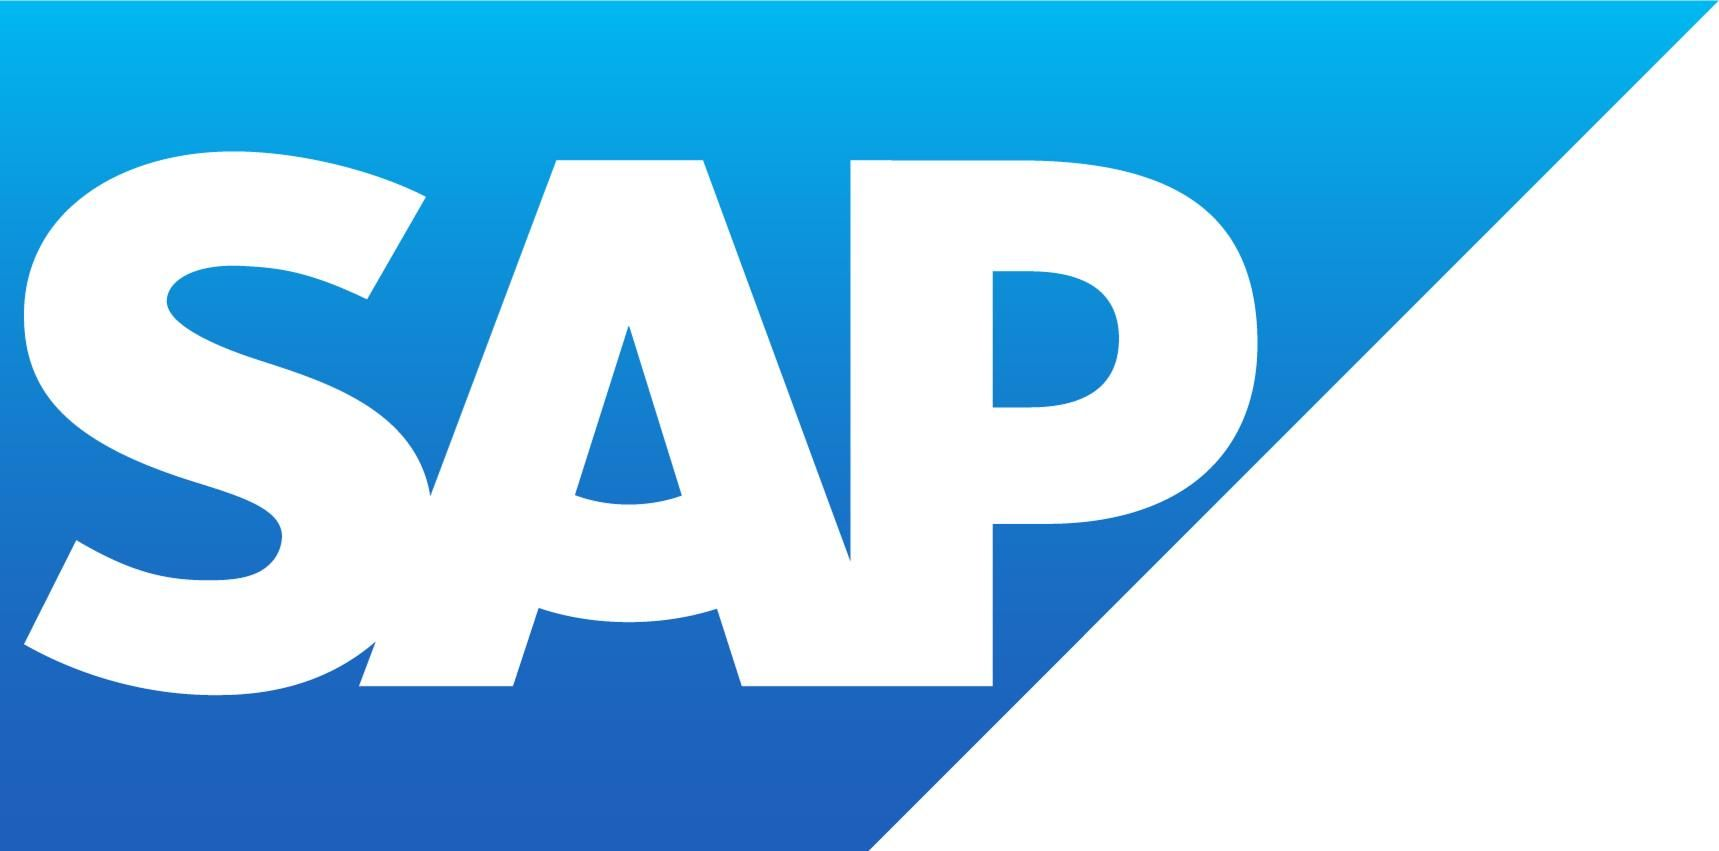 SAP Middle East and North Africa LLC